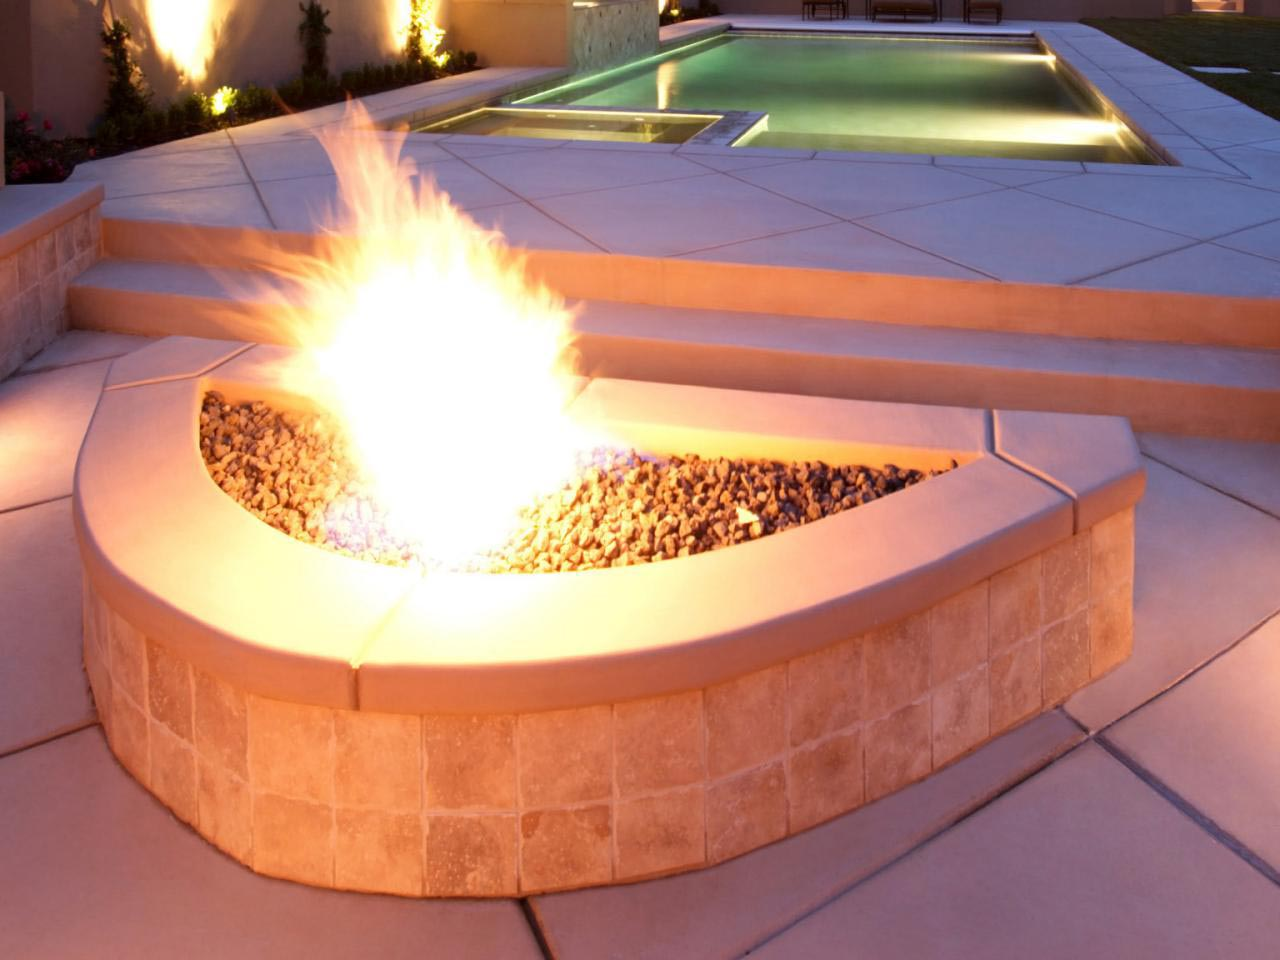 Everyone needs a small fire pit fire pit design ideas - Fire pits for your home ...